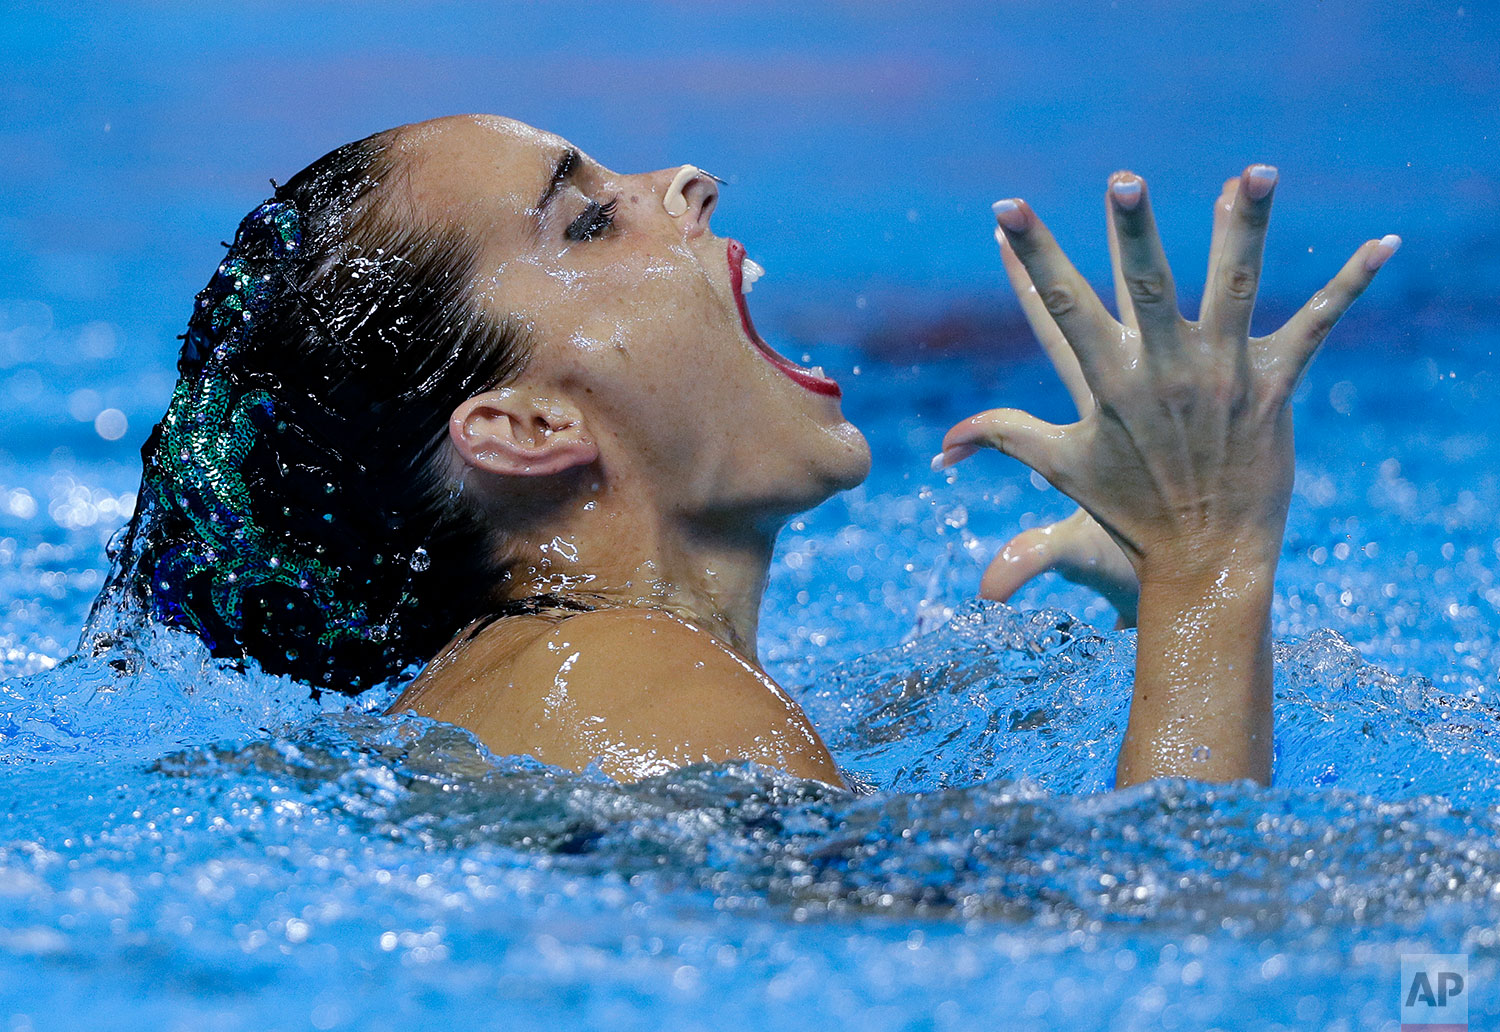 Spain's Ona Carbonell performs her routine in the artistic swimming solo free preliminary at the World Swimming Championships in Gwangju, South Korea, Monday, July 15, 2019. (AP Photo/Mark Baker)